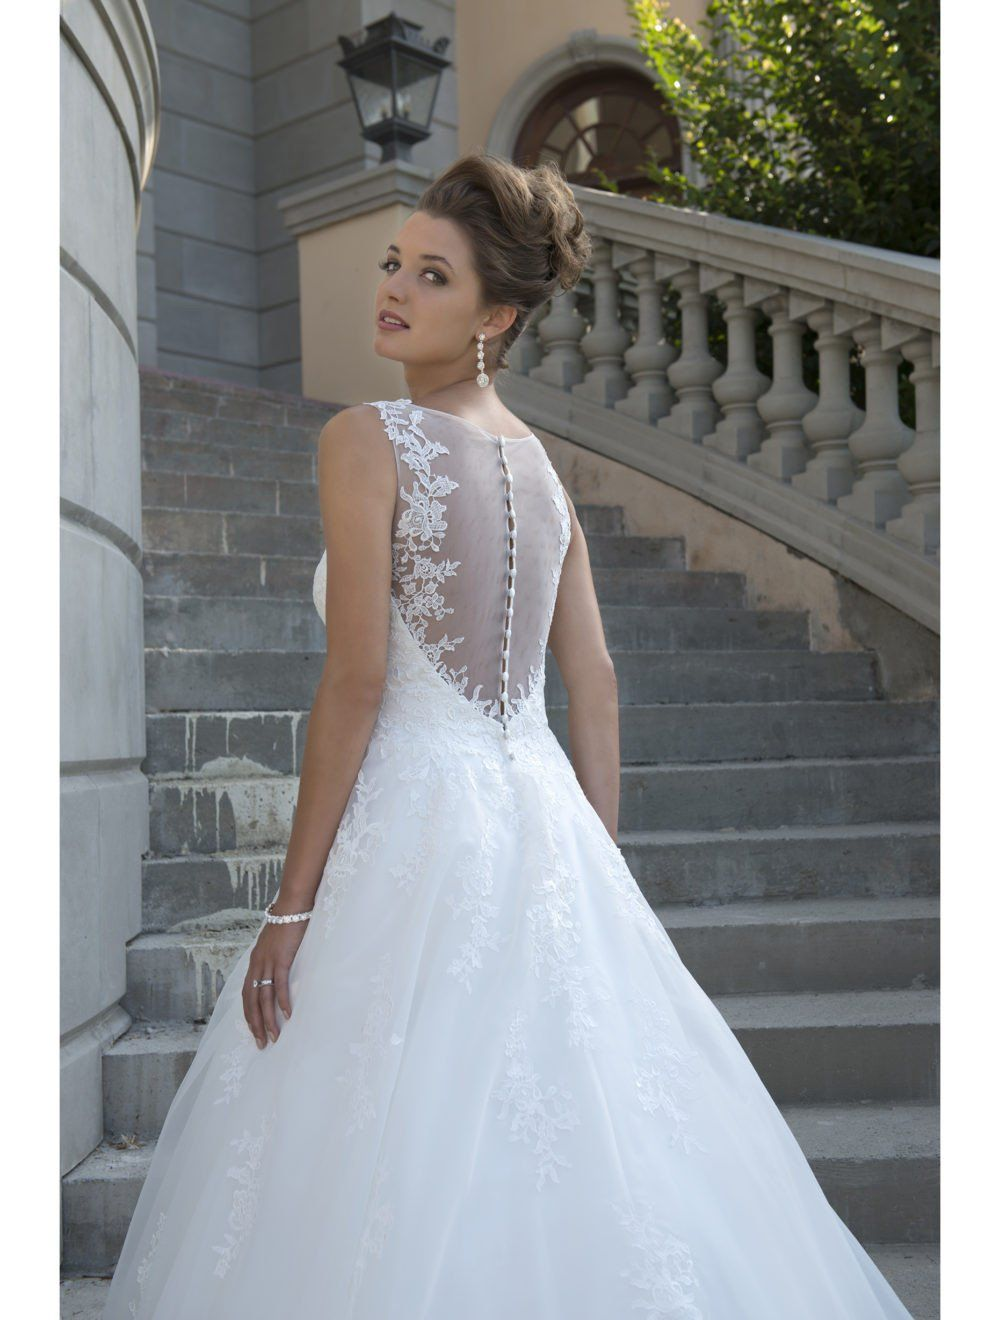 Sheer top wedding dress  At  Dresses  Pinterest  Bridal gowns Ball gowns and Gowns